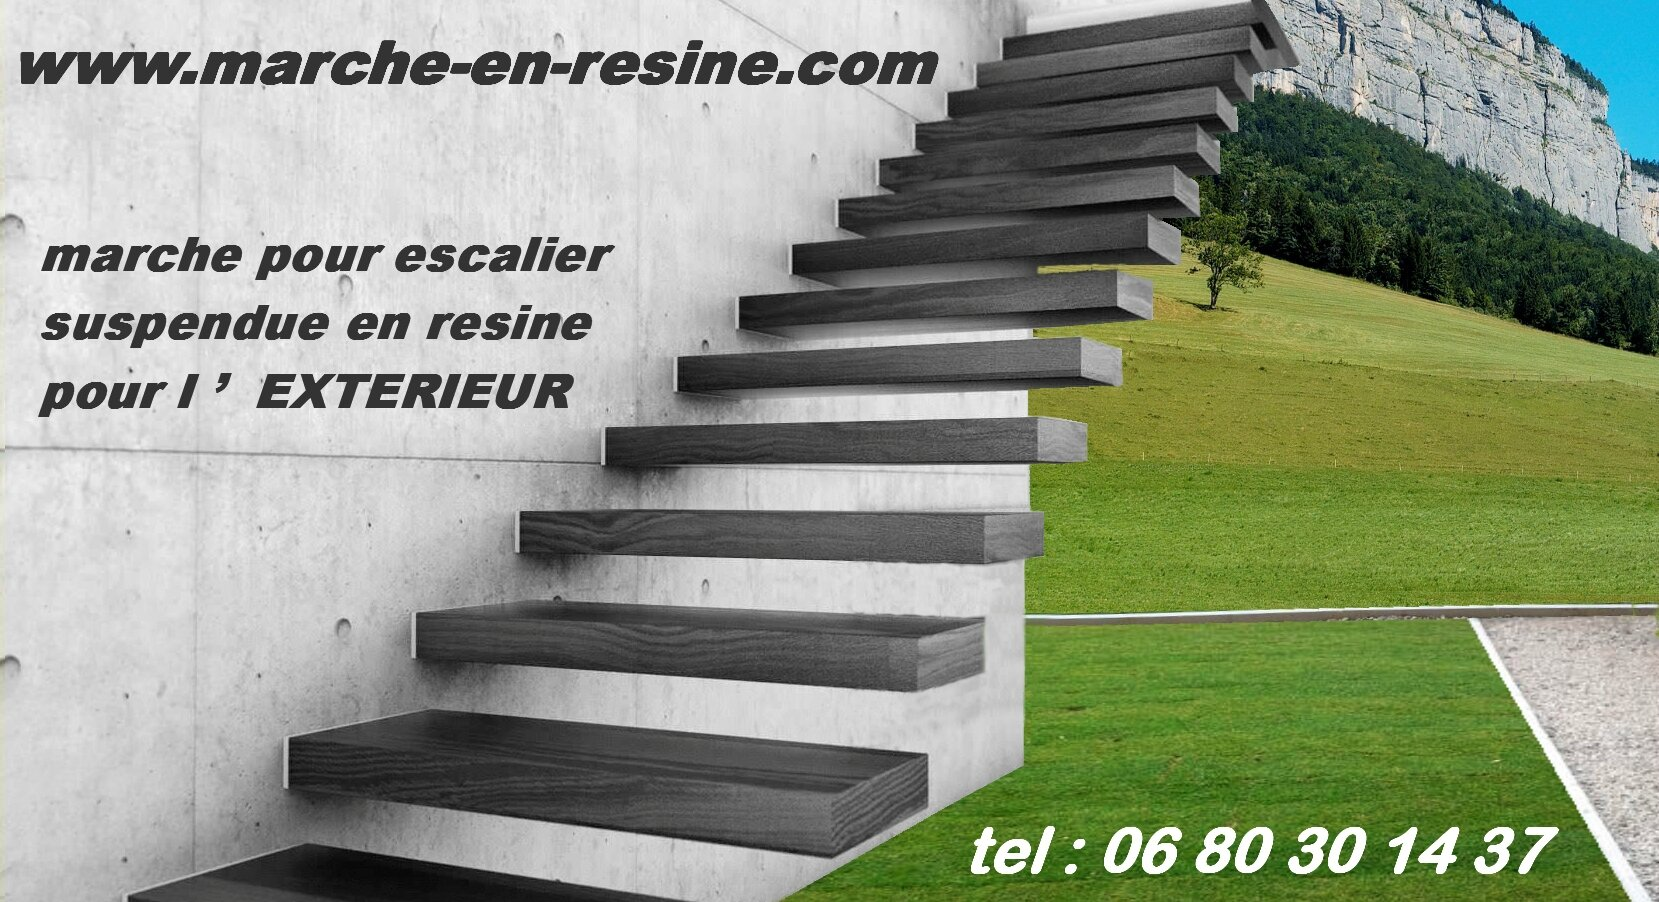 escalier m tallique escalier double limon escalier limon central escalier beton cir decoupe de. Black Bedroom Furniture Sets. Home Design Ideas